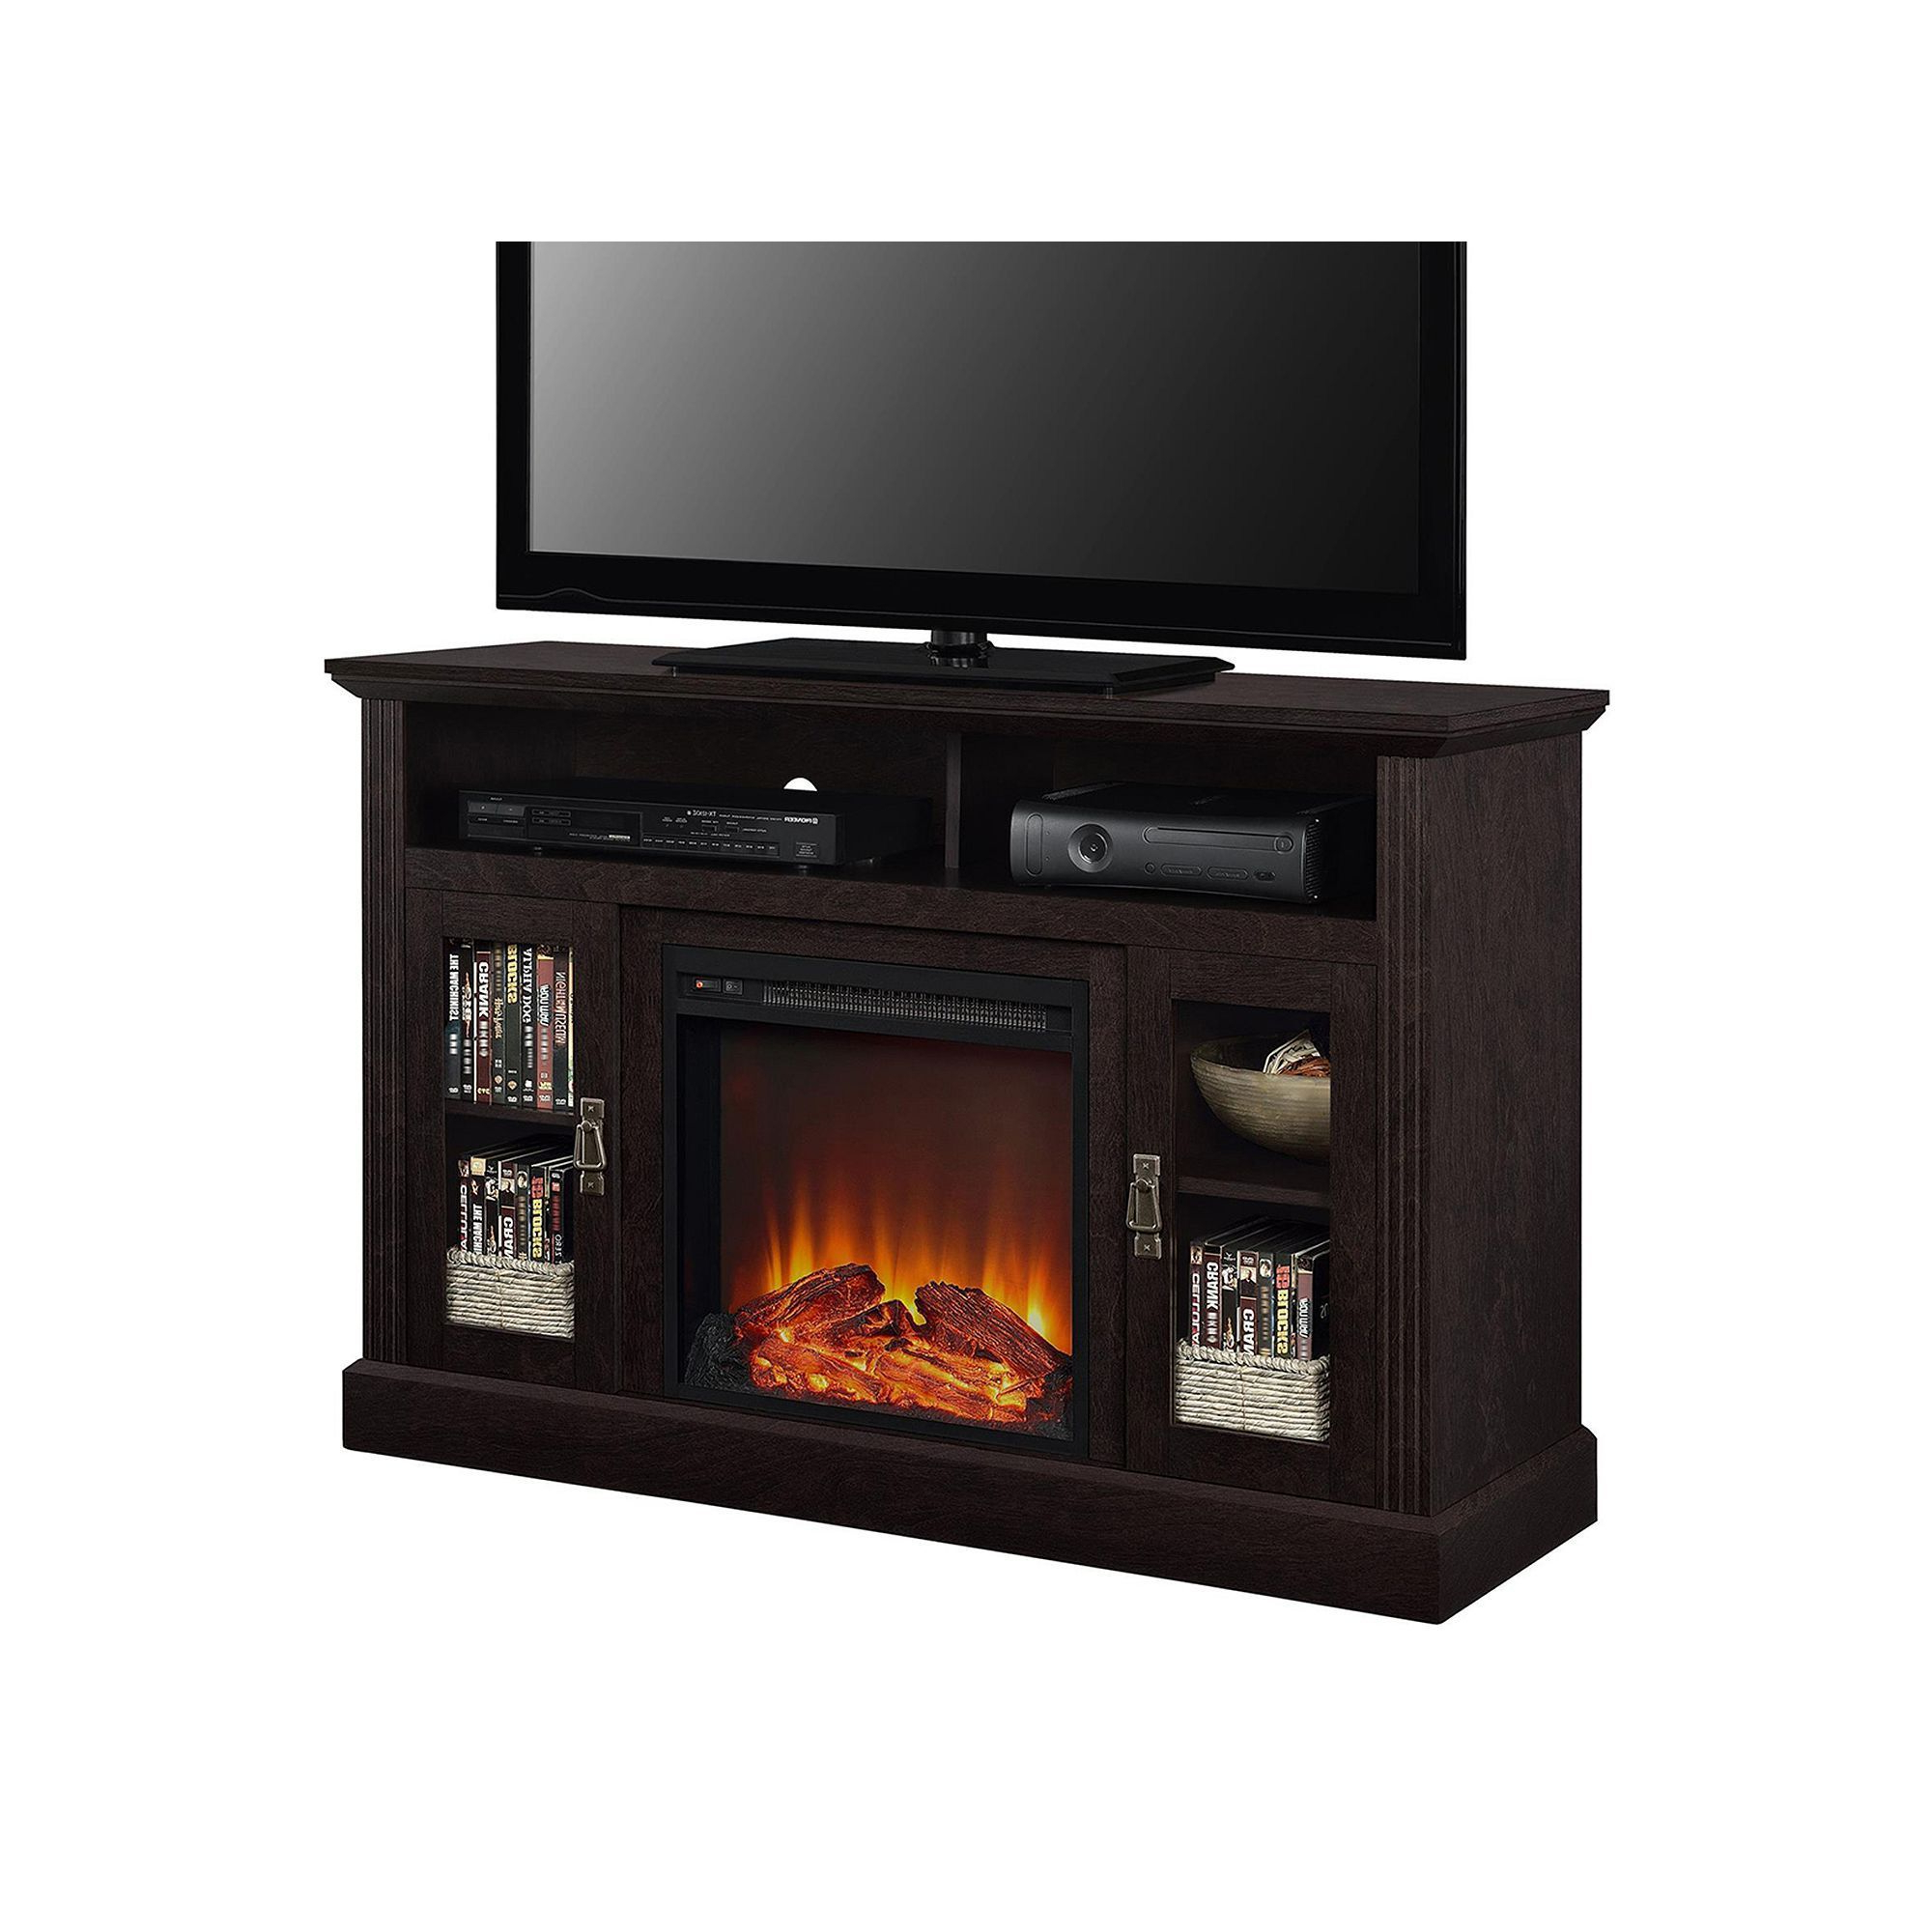 Altra Chicago Electric Fireplace Tv Stand, Brown (Gallery 9 of 20)